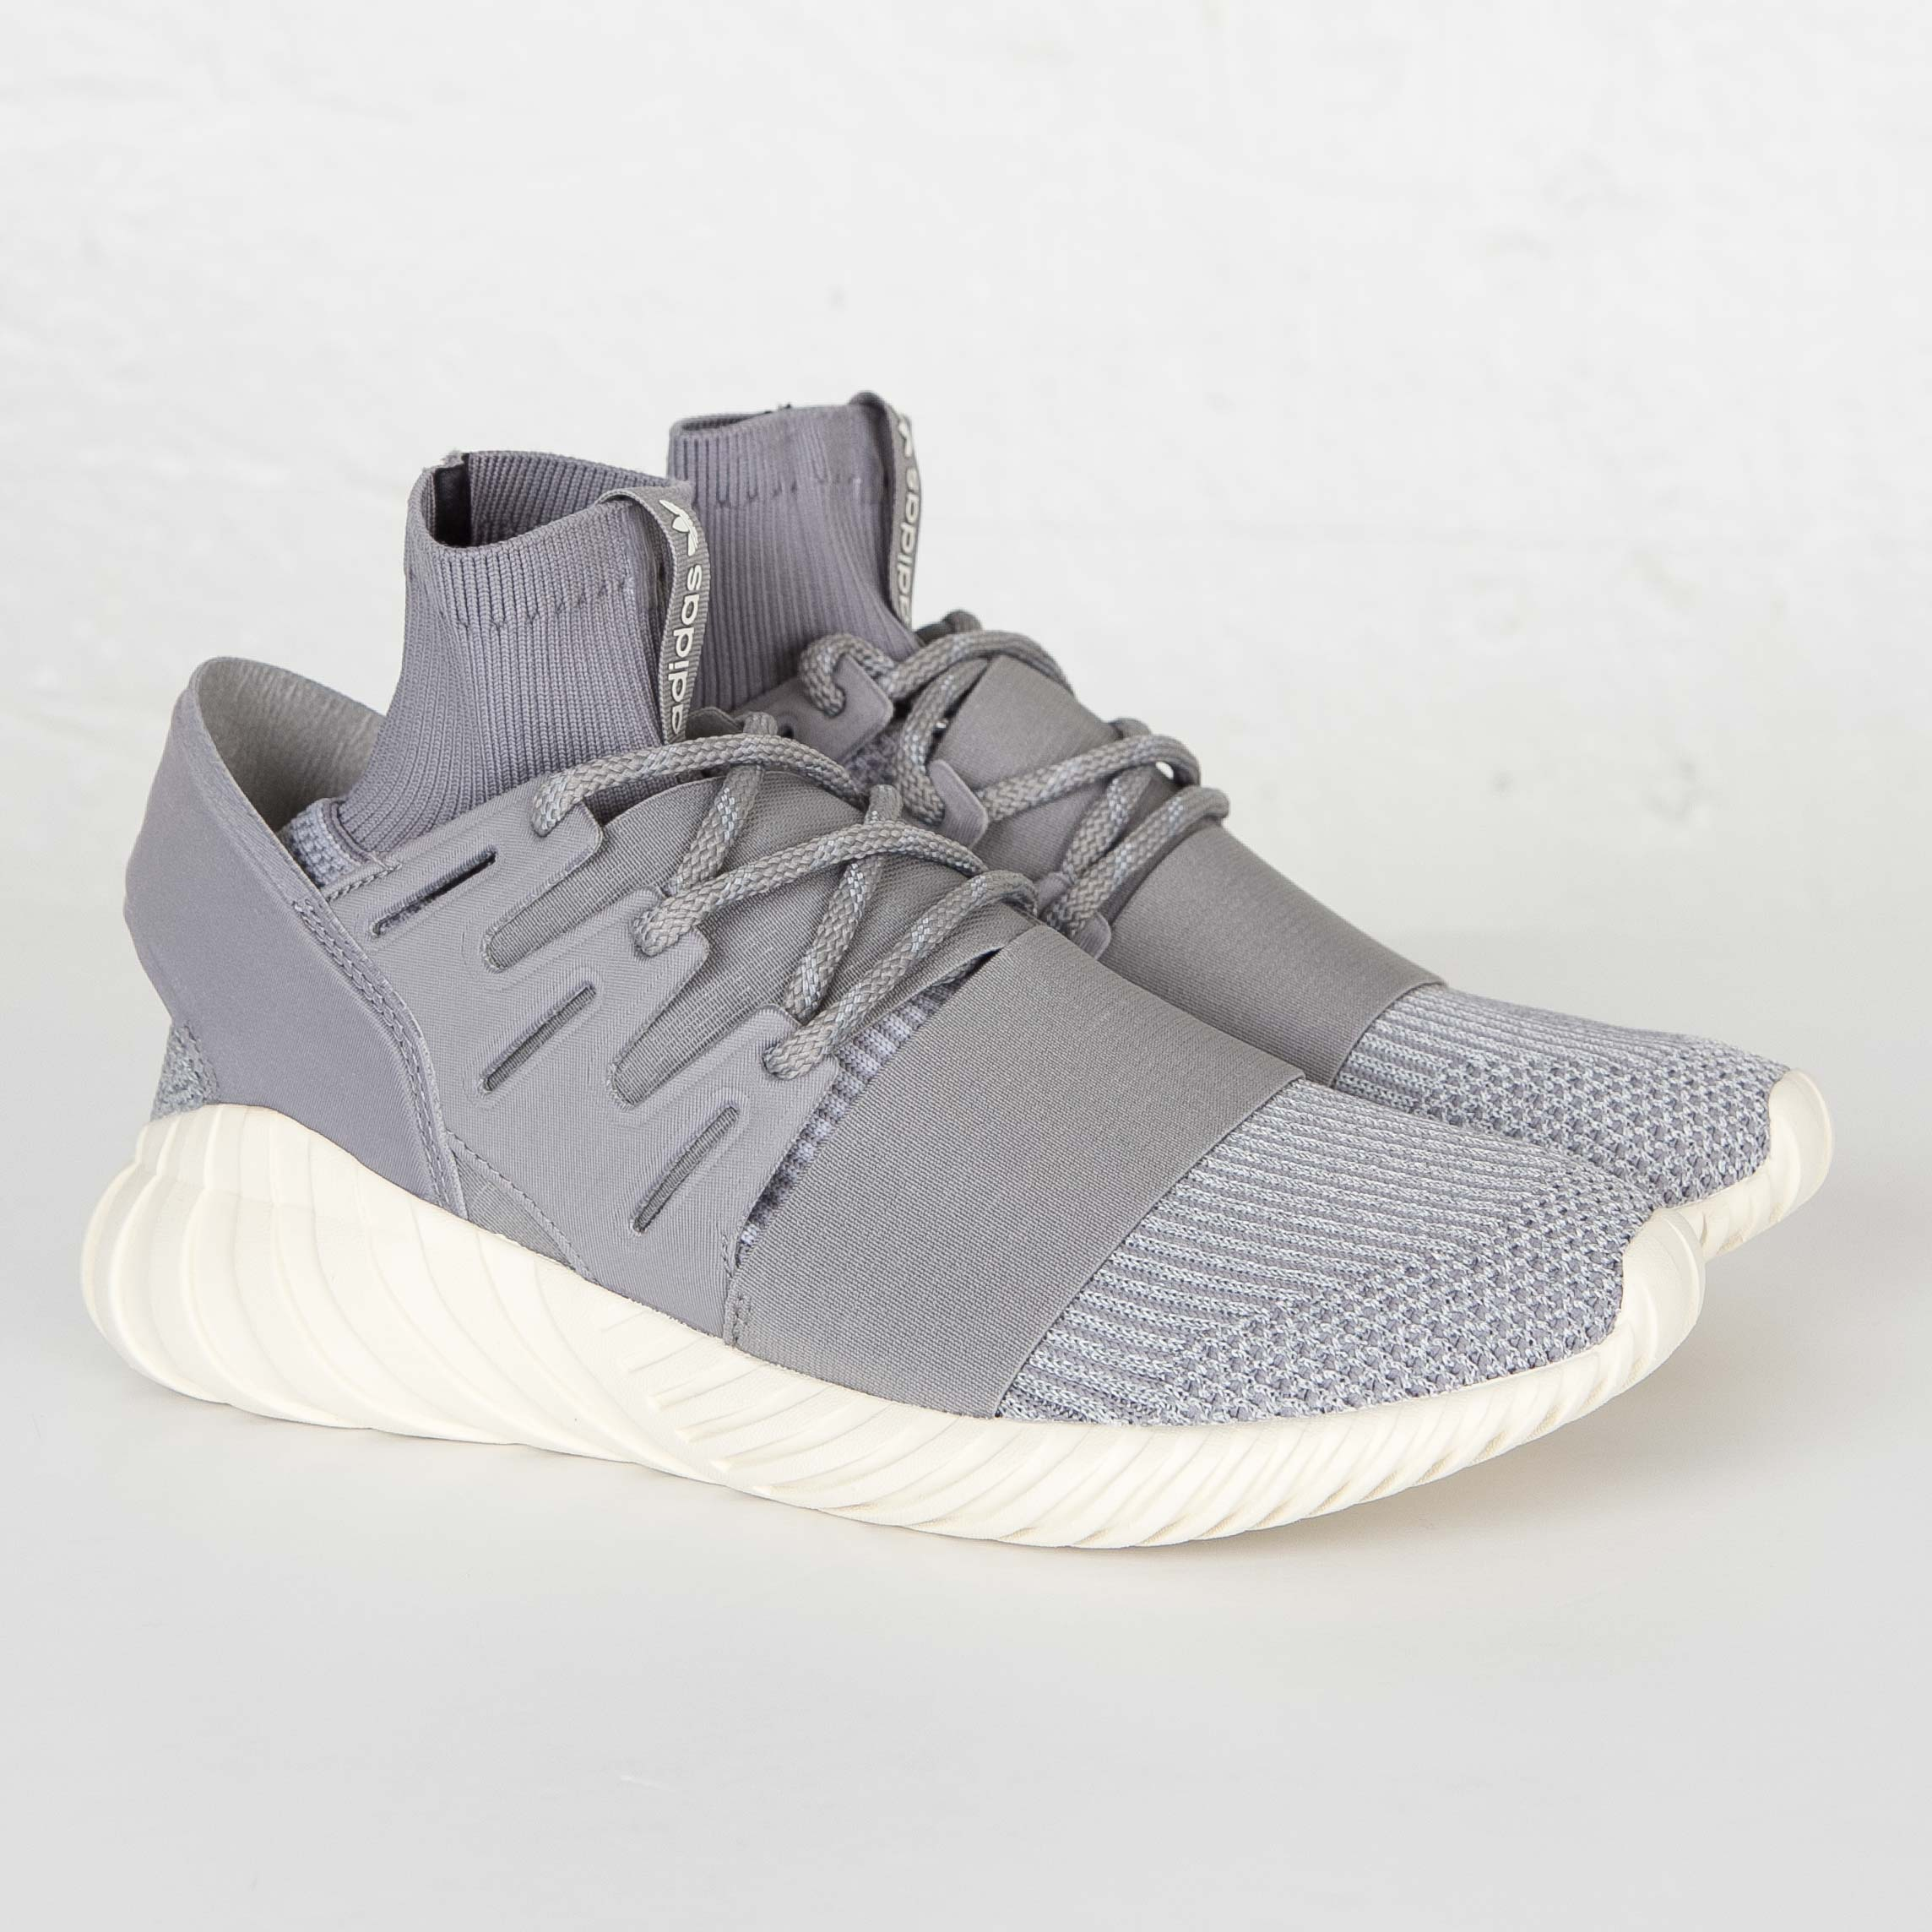 51b0cd0bc049 adidas Tubular Doom PK - S74920 - Sneakersnstuff